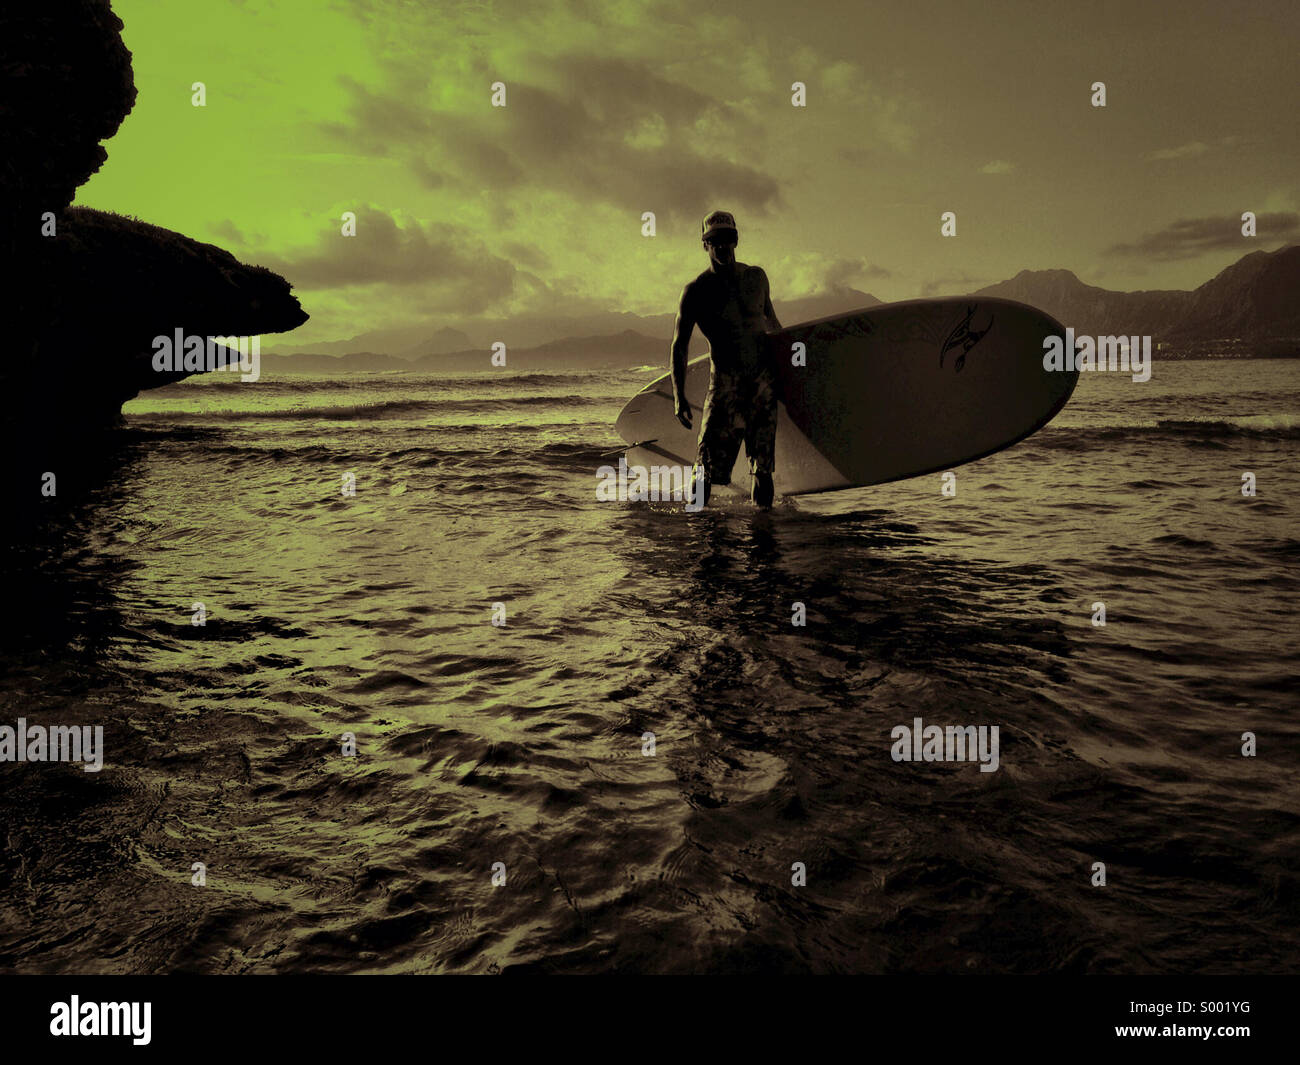 Stand up paddle day trip at Kaneohe Bay, Oahu, Hawaii. - Stock Image